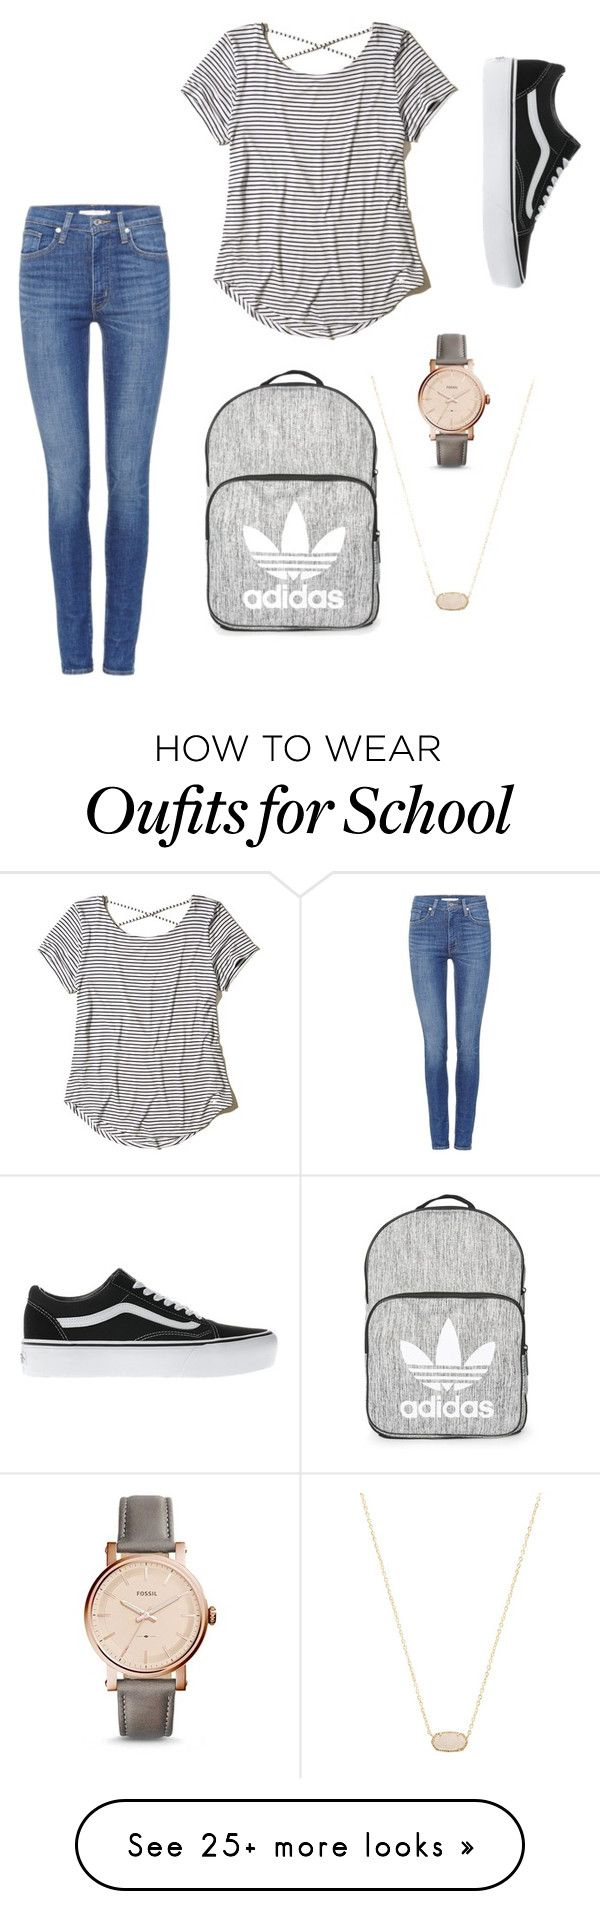 """""""school day"""" by sassyrockstar on Polyvore featuring Levi's, Hollister Co., Vans, Topshop, FOSSIL and Kendra Scott"""